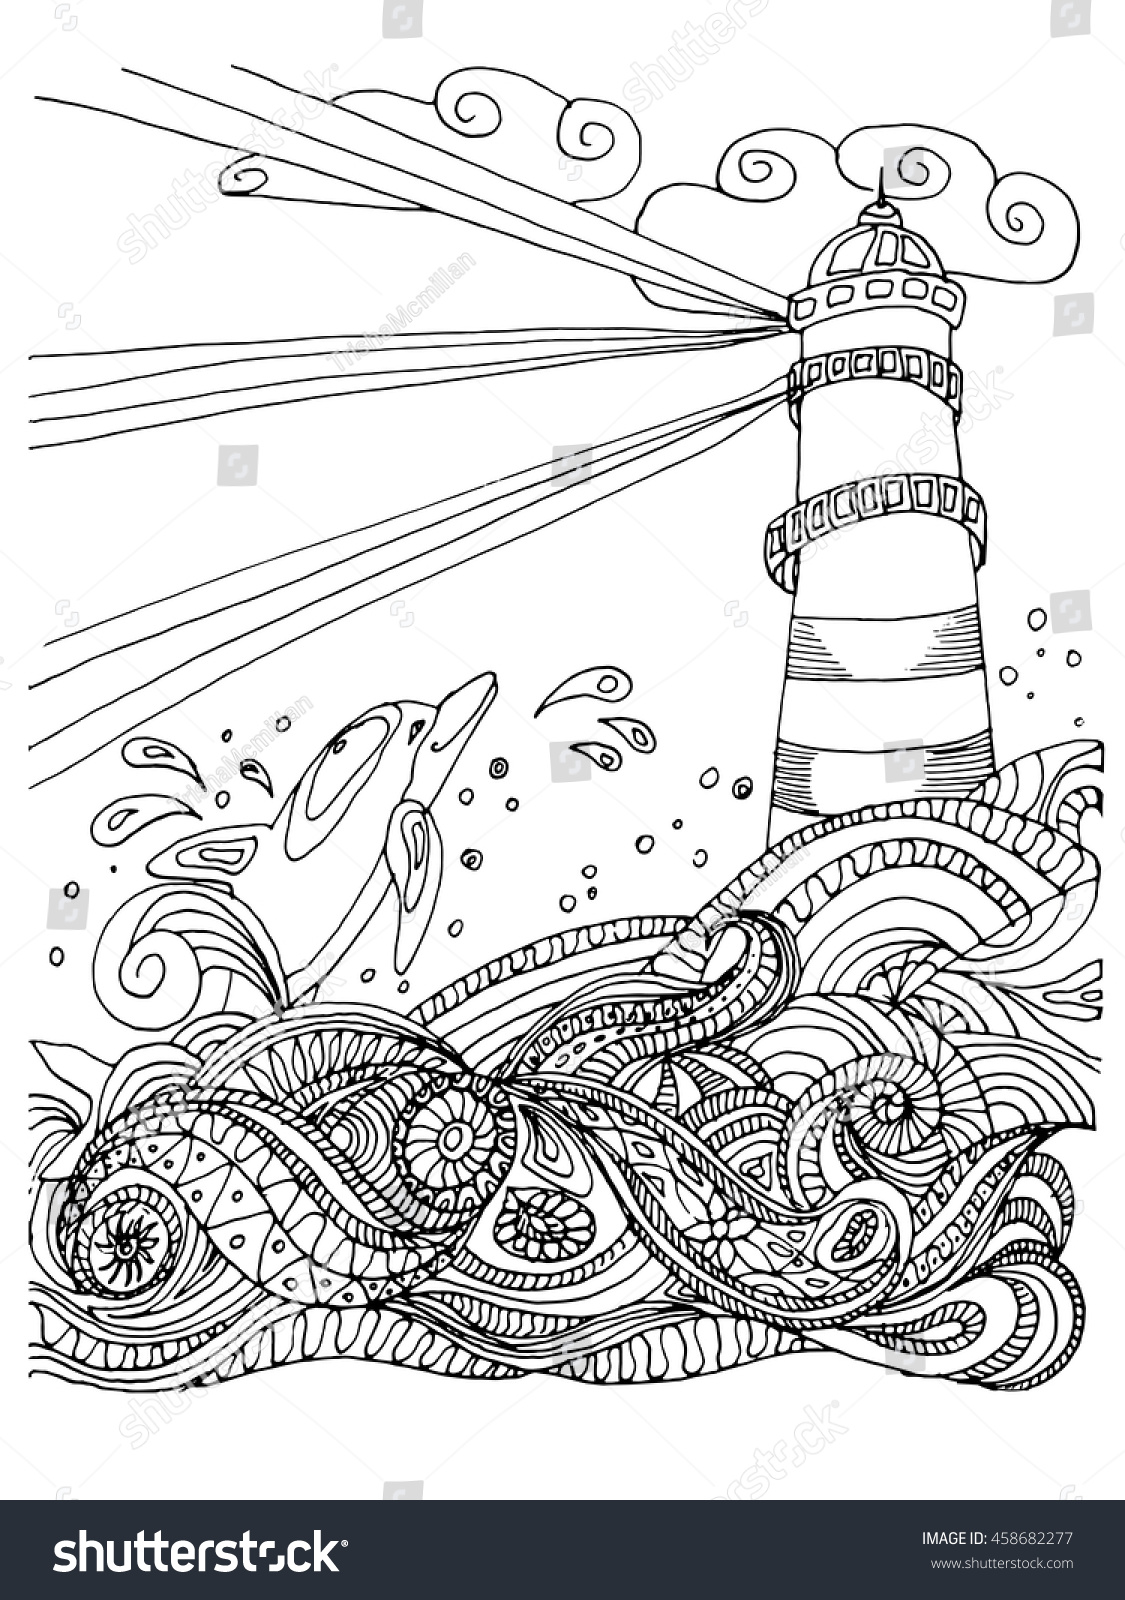 Sketch of light house for coloring book for adult anti for Adult coloring pages nautical